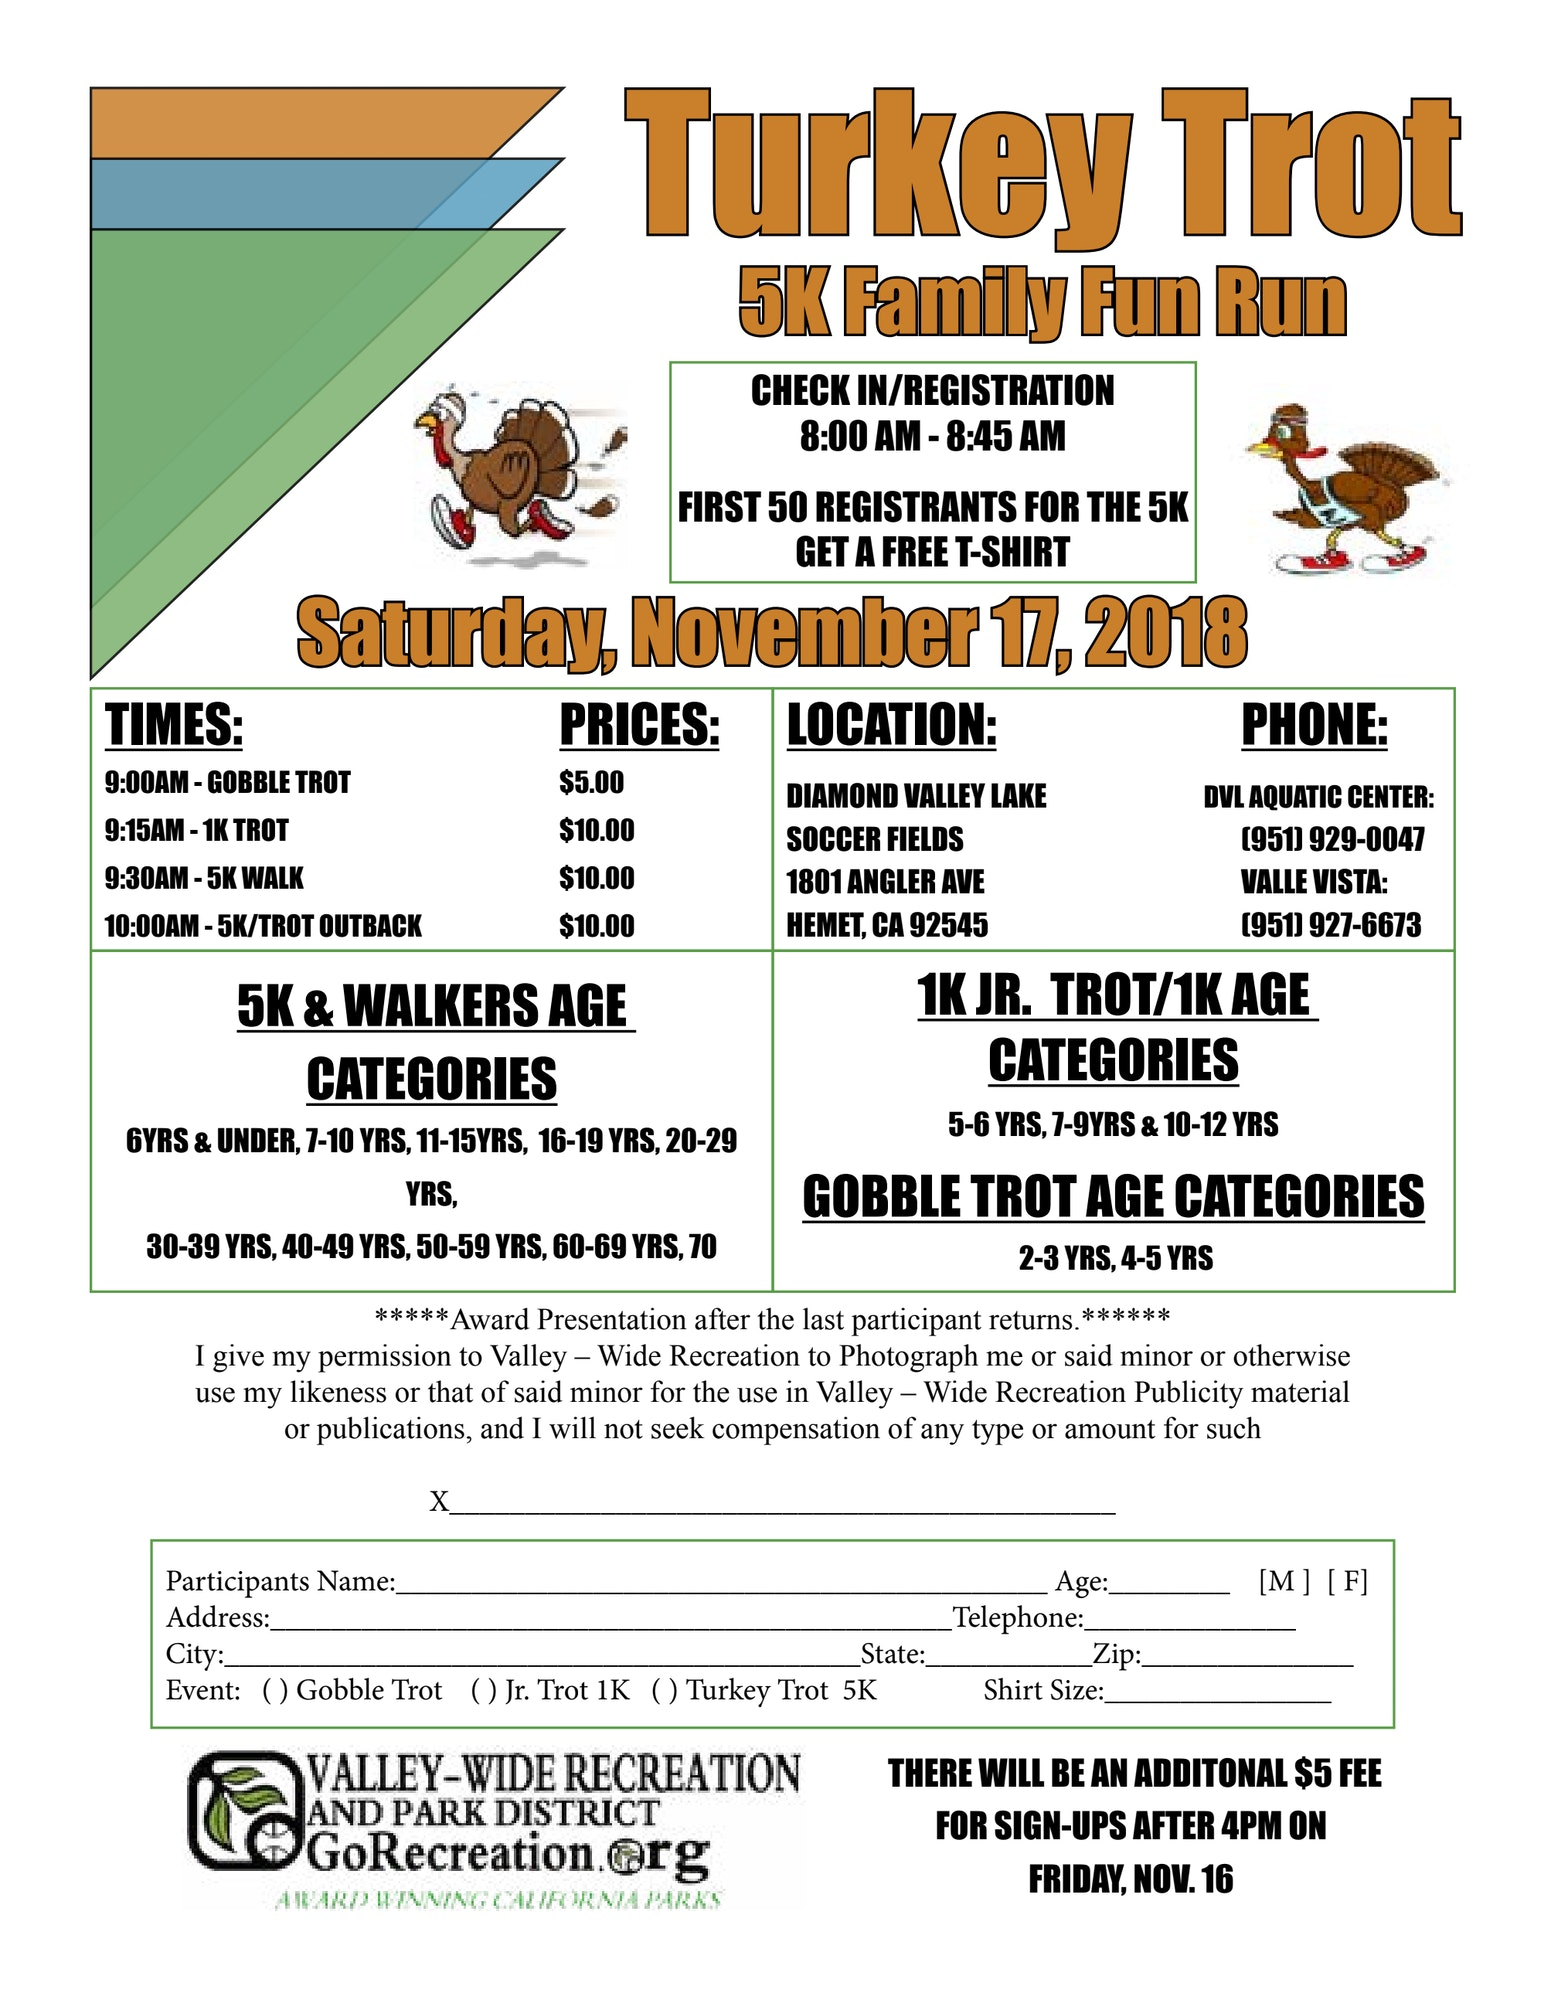 Turkey Trot - Valley-Wide Recreation & Park District